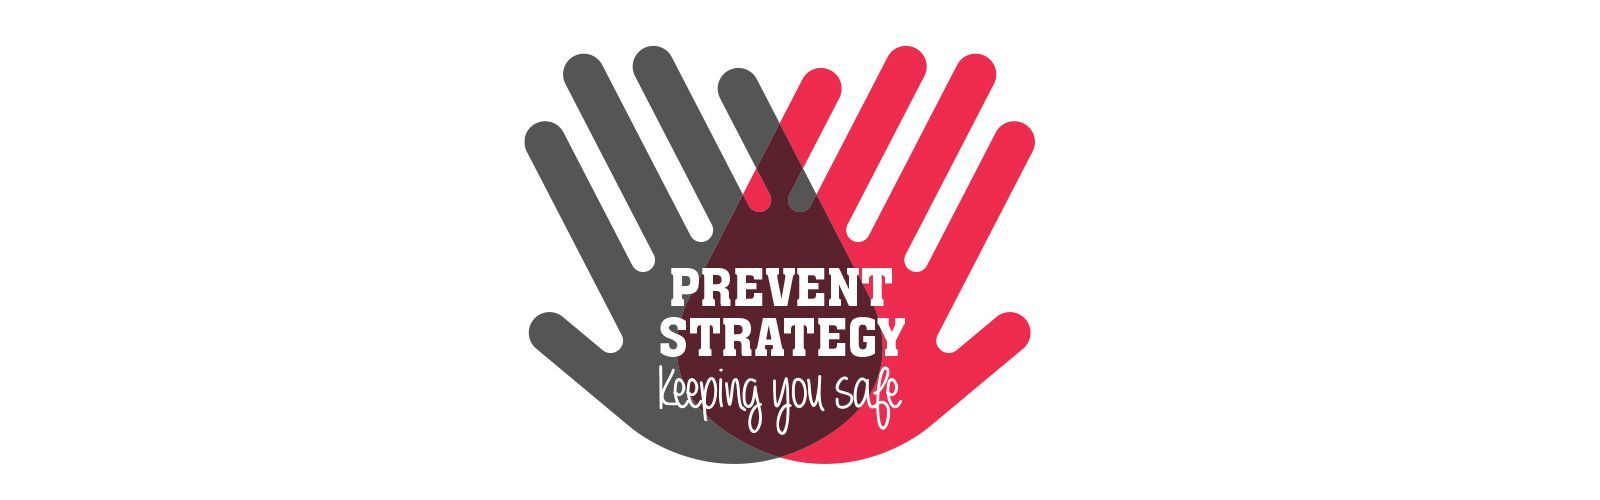 Calling time on the Prevent strategy